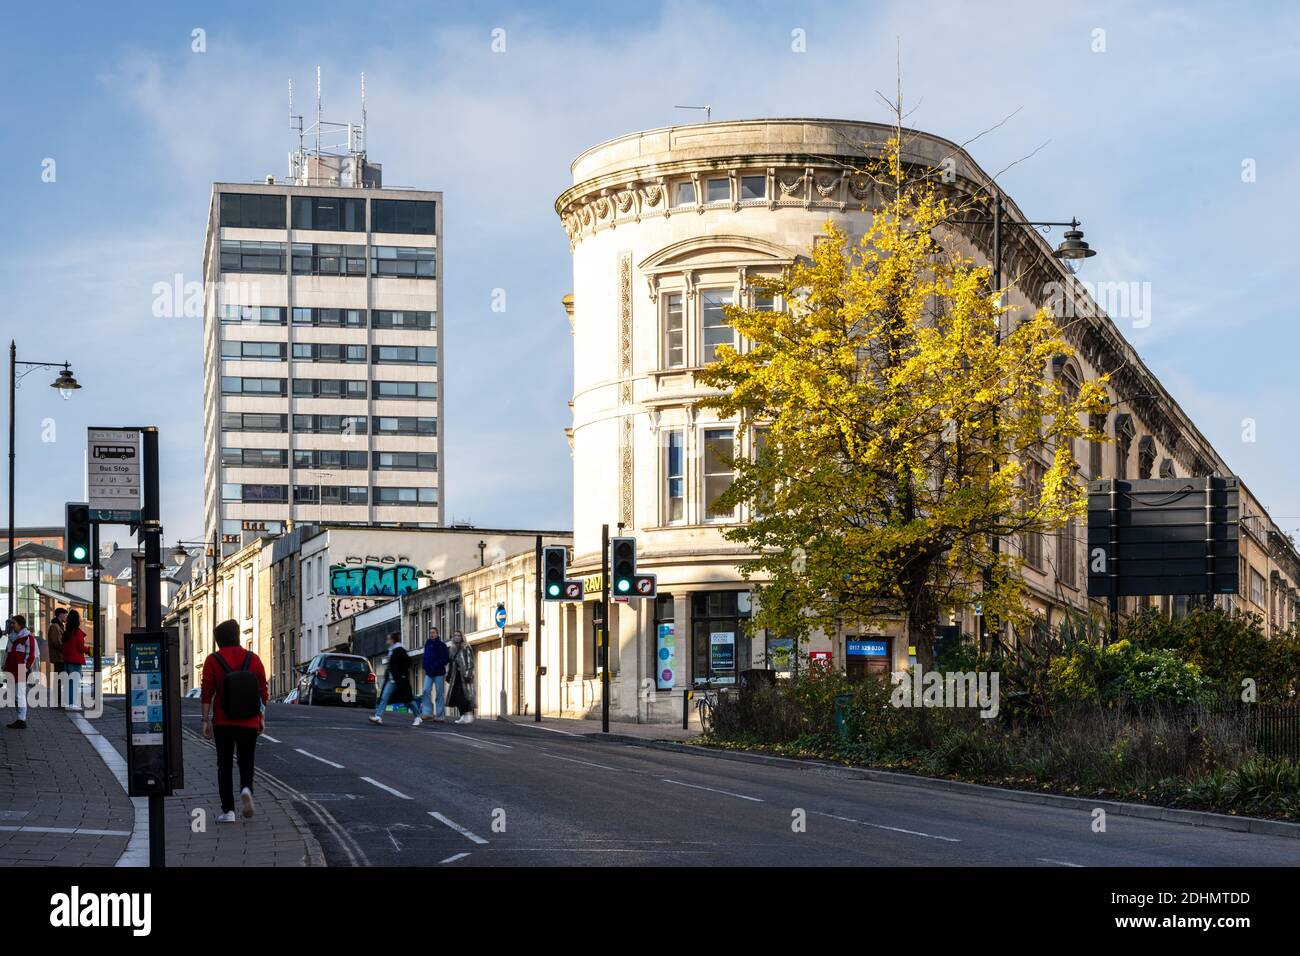 A tree displays autumn colours outside traditional mixed-use apartment and shop buildings on the Queen's Road Triangle in Bristol, with the Clifton He Stock Photo